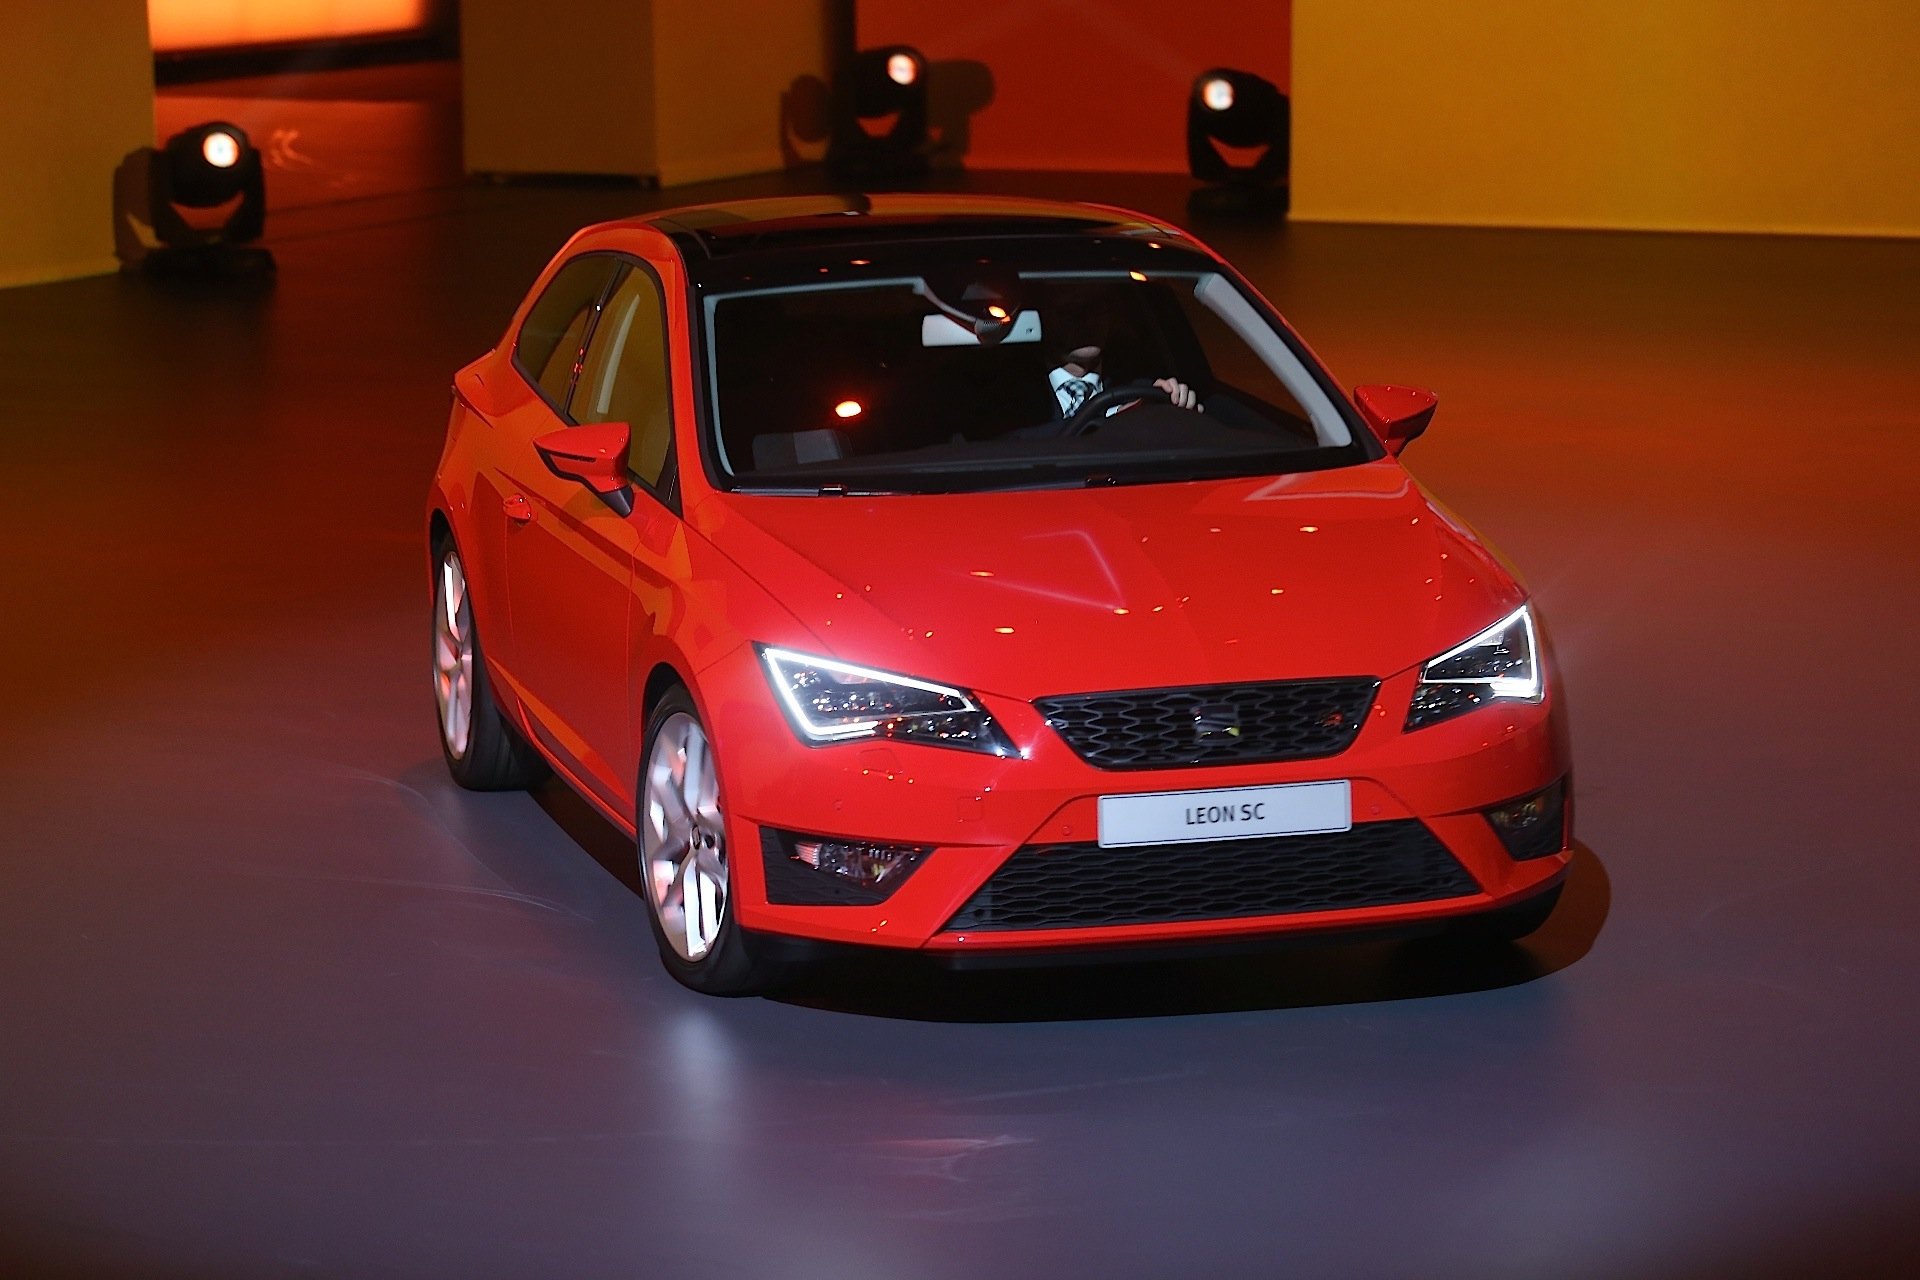 seat leon sc 3 doors specs 2013 2014 2015 2016 2017 autoevolution. Black Bedroom Furniture Sets. Home Design Ideas